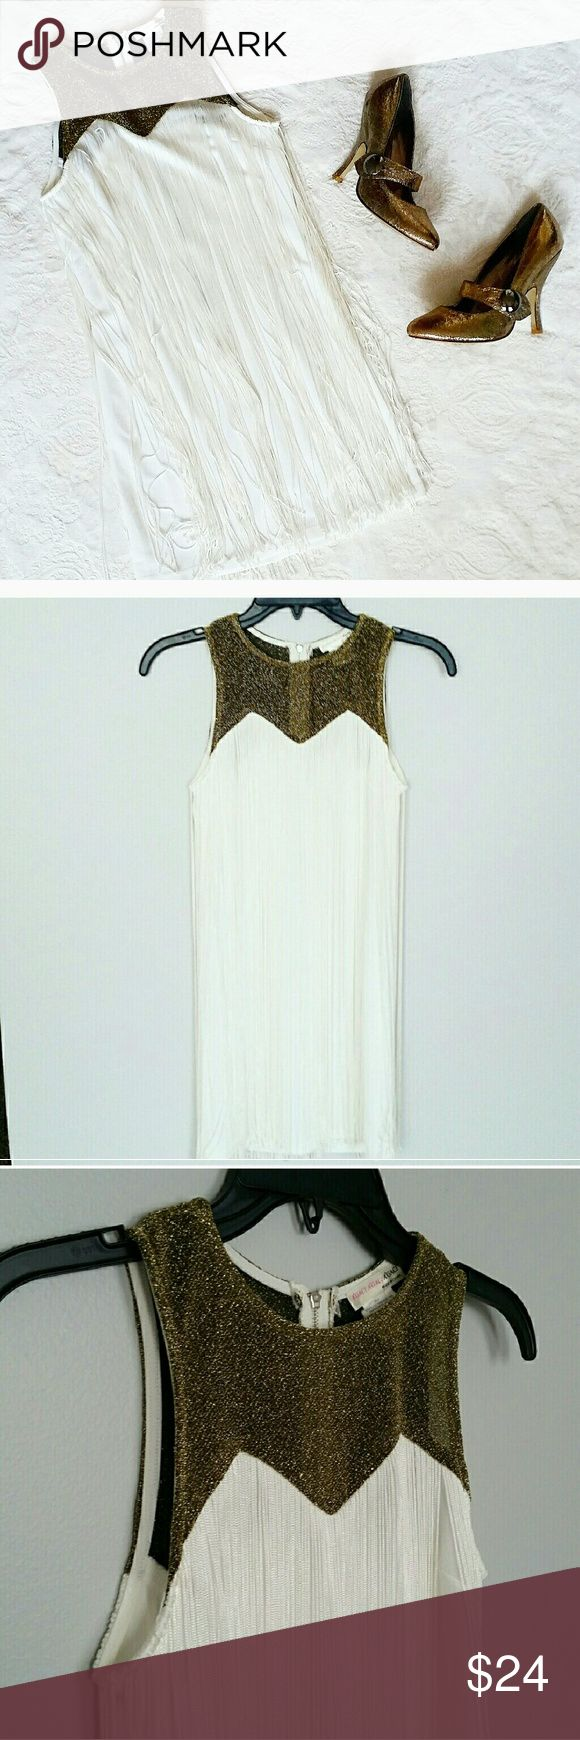 EUC Boho Fringe White and Gold Bodycon Dress EUC Boho Fringe Bodycon Dress EUC worn once. Boho style Bodycon dress material details on photos. Dress body is white stretch material, overlaid with white Fringe that goes down to hem. Gold top is non-itchy material. Silver zipper back closure. Armpit to armpit 14 inches, neck to hem 27.5 inches, width 15 inches at hem. a'gaci Dresses Mini